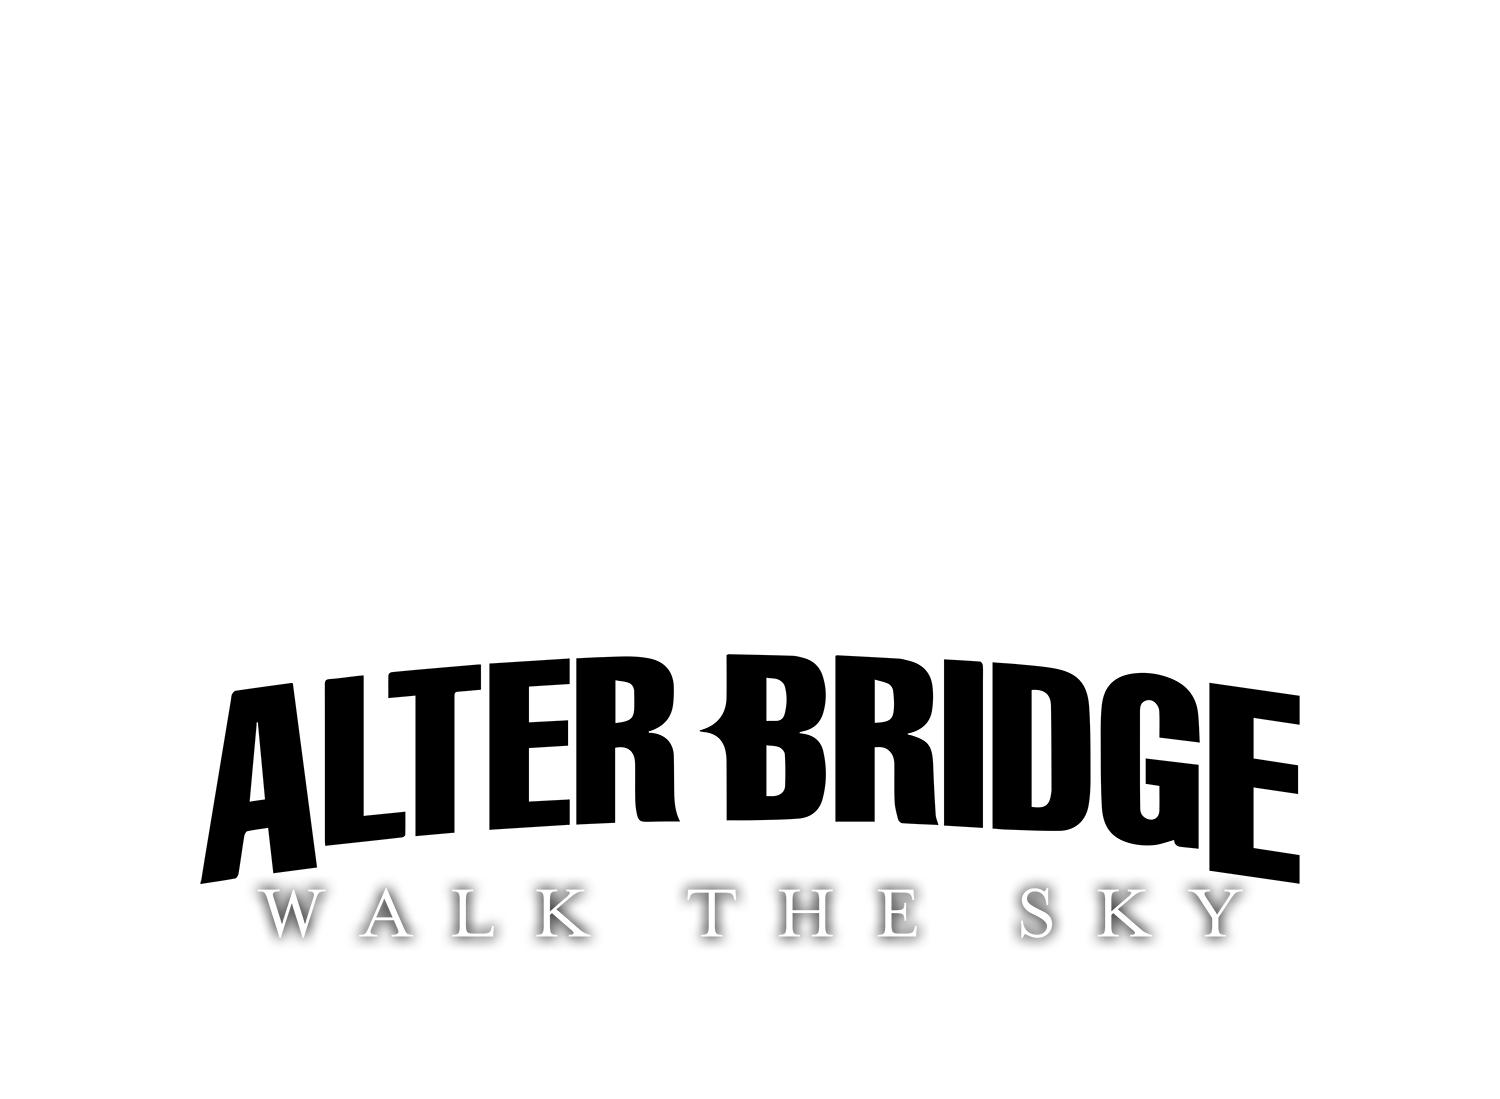 Alter bridge walk the sky logo